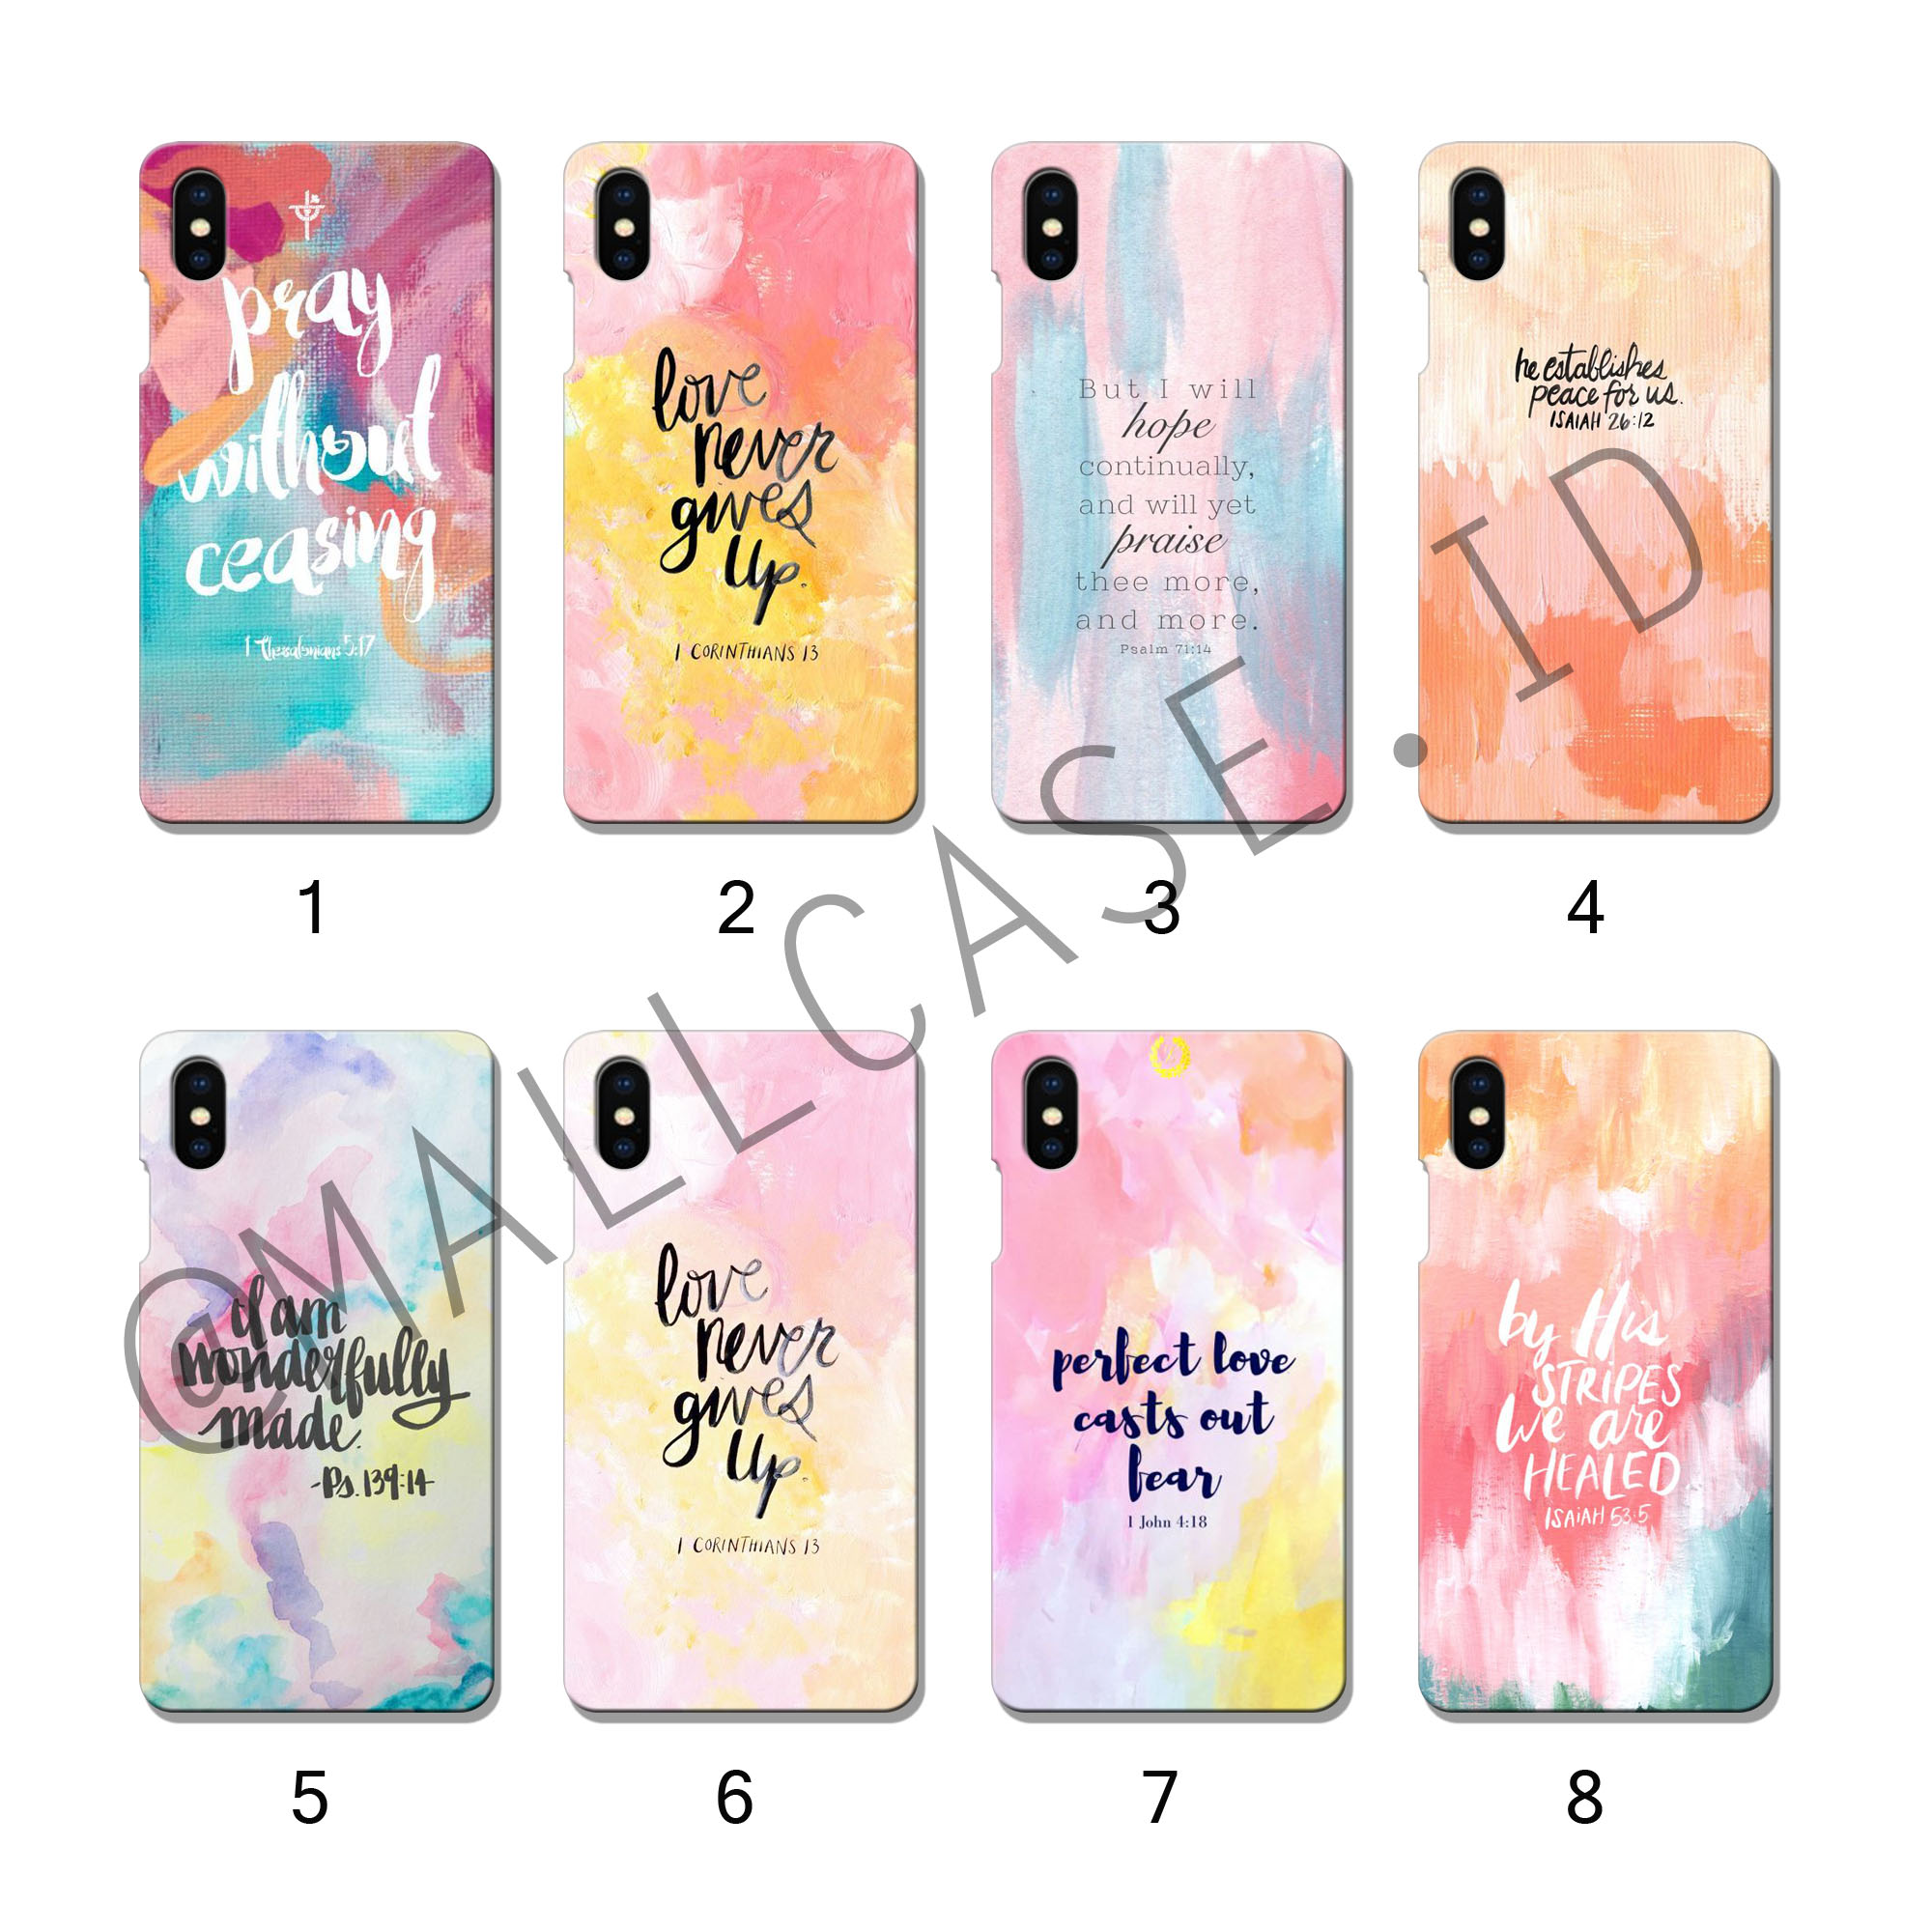 Mc45 Pastilaku Case Handphone Kata Berkat All Type Case Hp Casing Hp Casing Handphone Case Hp Bisa Cod Case Oppo Case Samsung Case Vivo